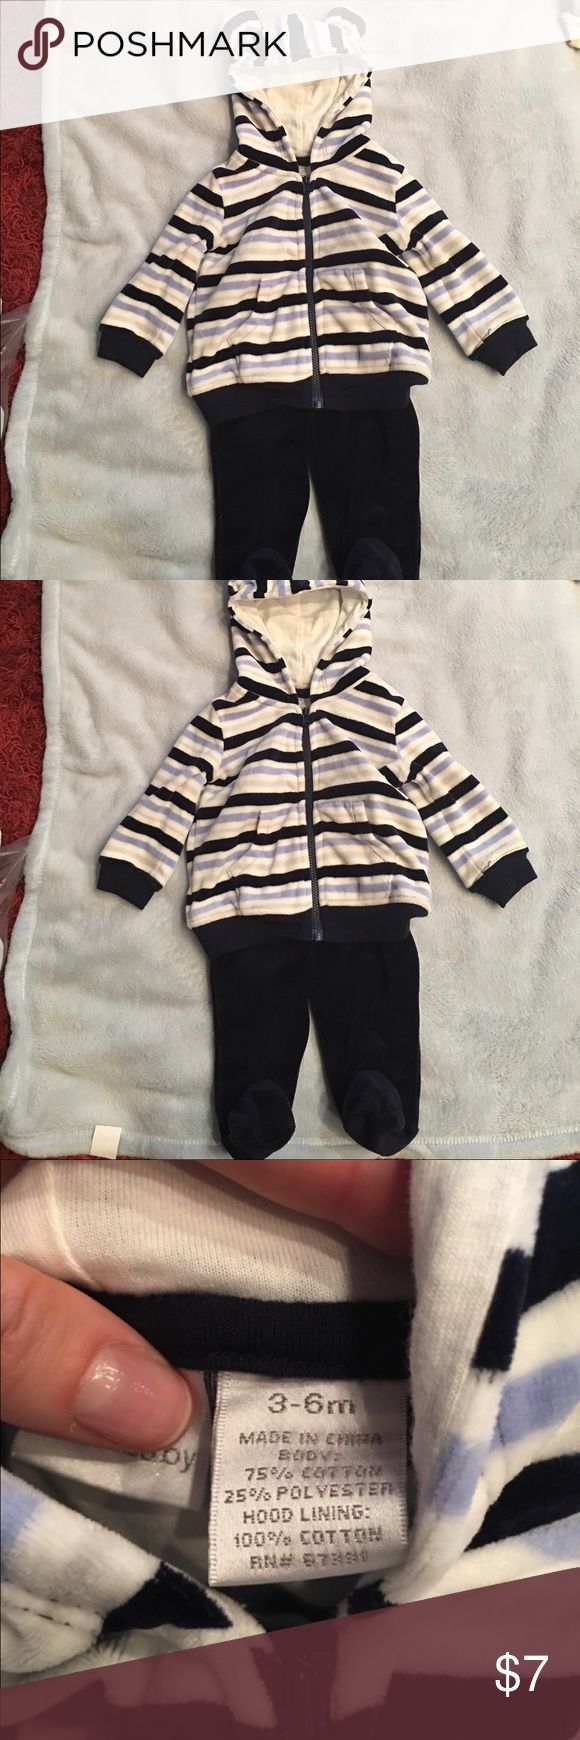 Blue and white sweat outfit. Cotton suit with zip up hoodie and has cute little ears on hoodie. Bottoms have footies so baby doesn't get cold. Really cute and will keep baby warm. Never worn. Bundle and save :) Koala Kids Matching Sets